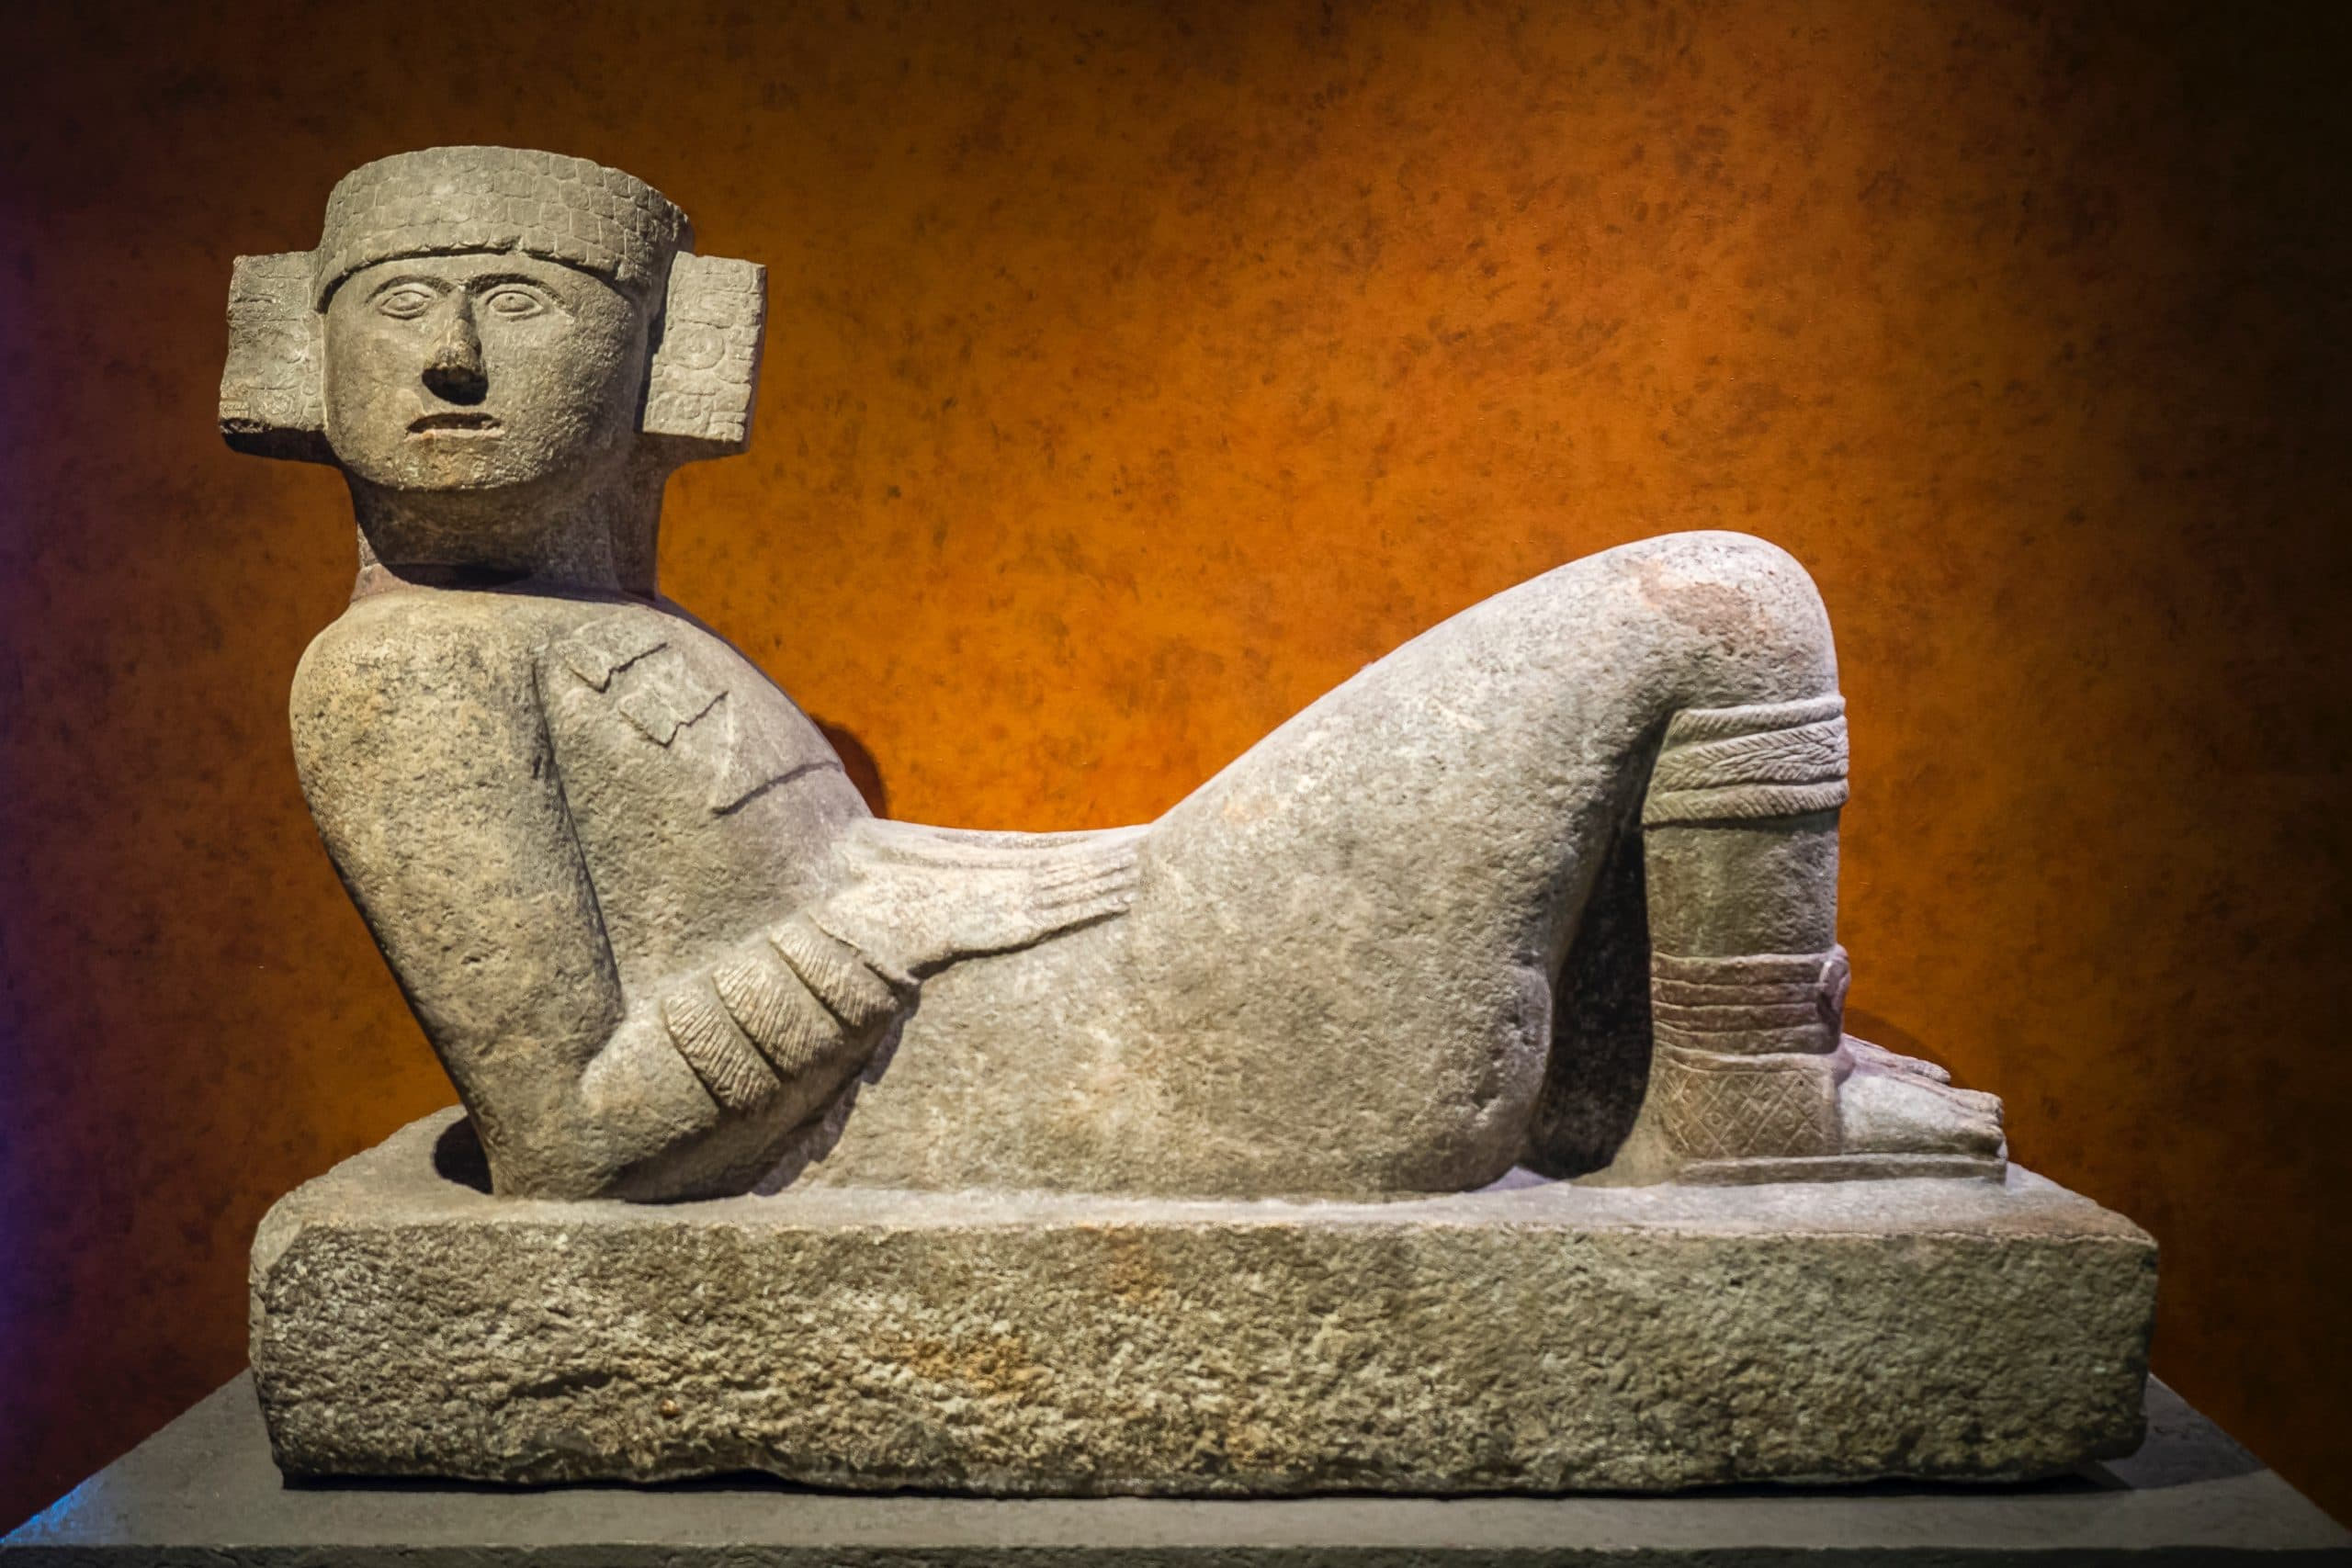 historical-artefact-examined-by-art-historians